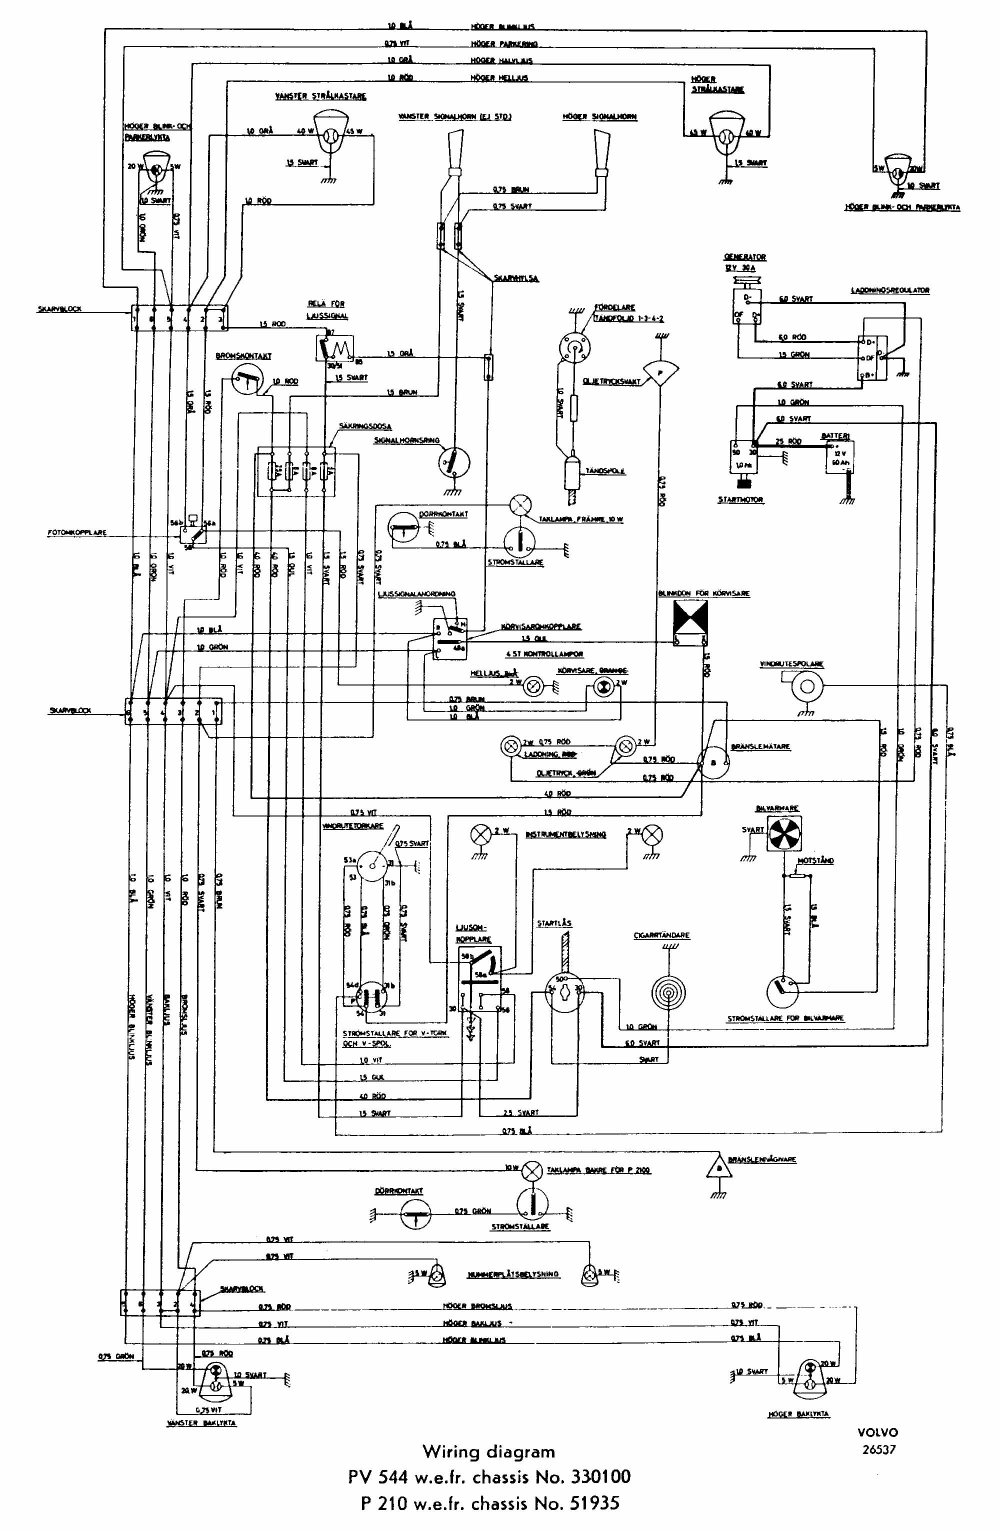 medium resolution of 122s wiring diagram wiring diagram third level porsche 968 wiring diagram volvo 122 1967 wiring diagram